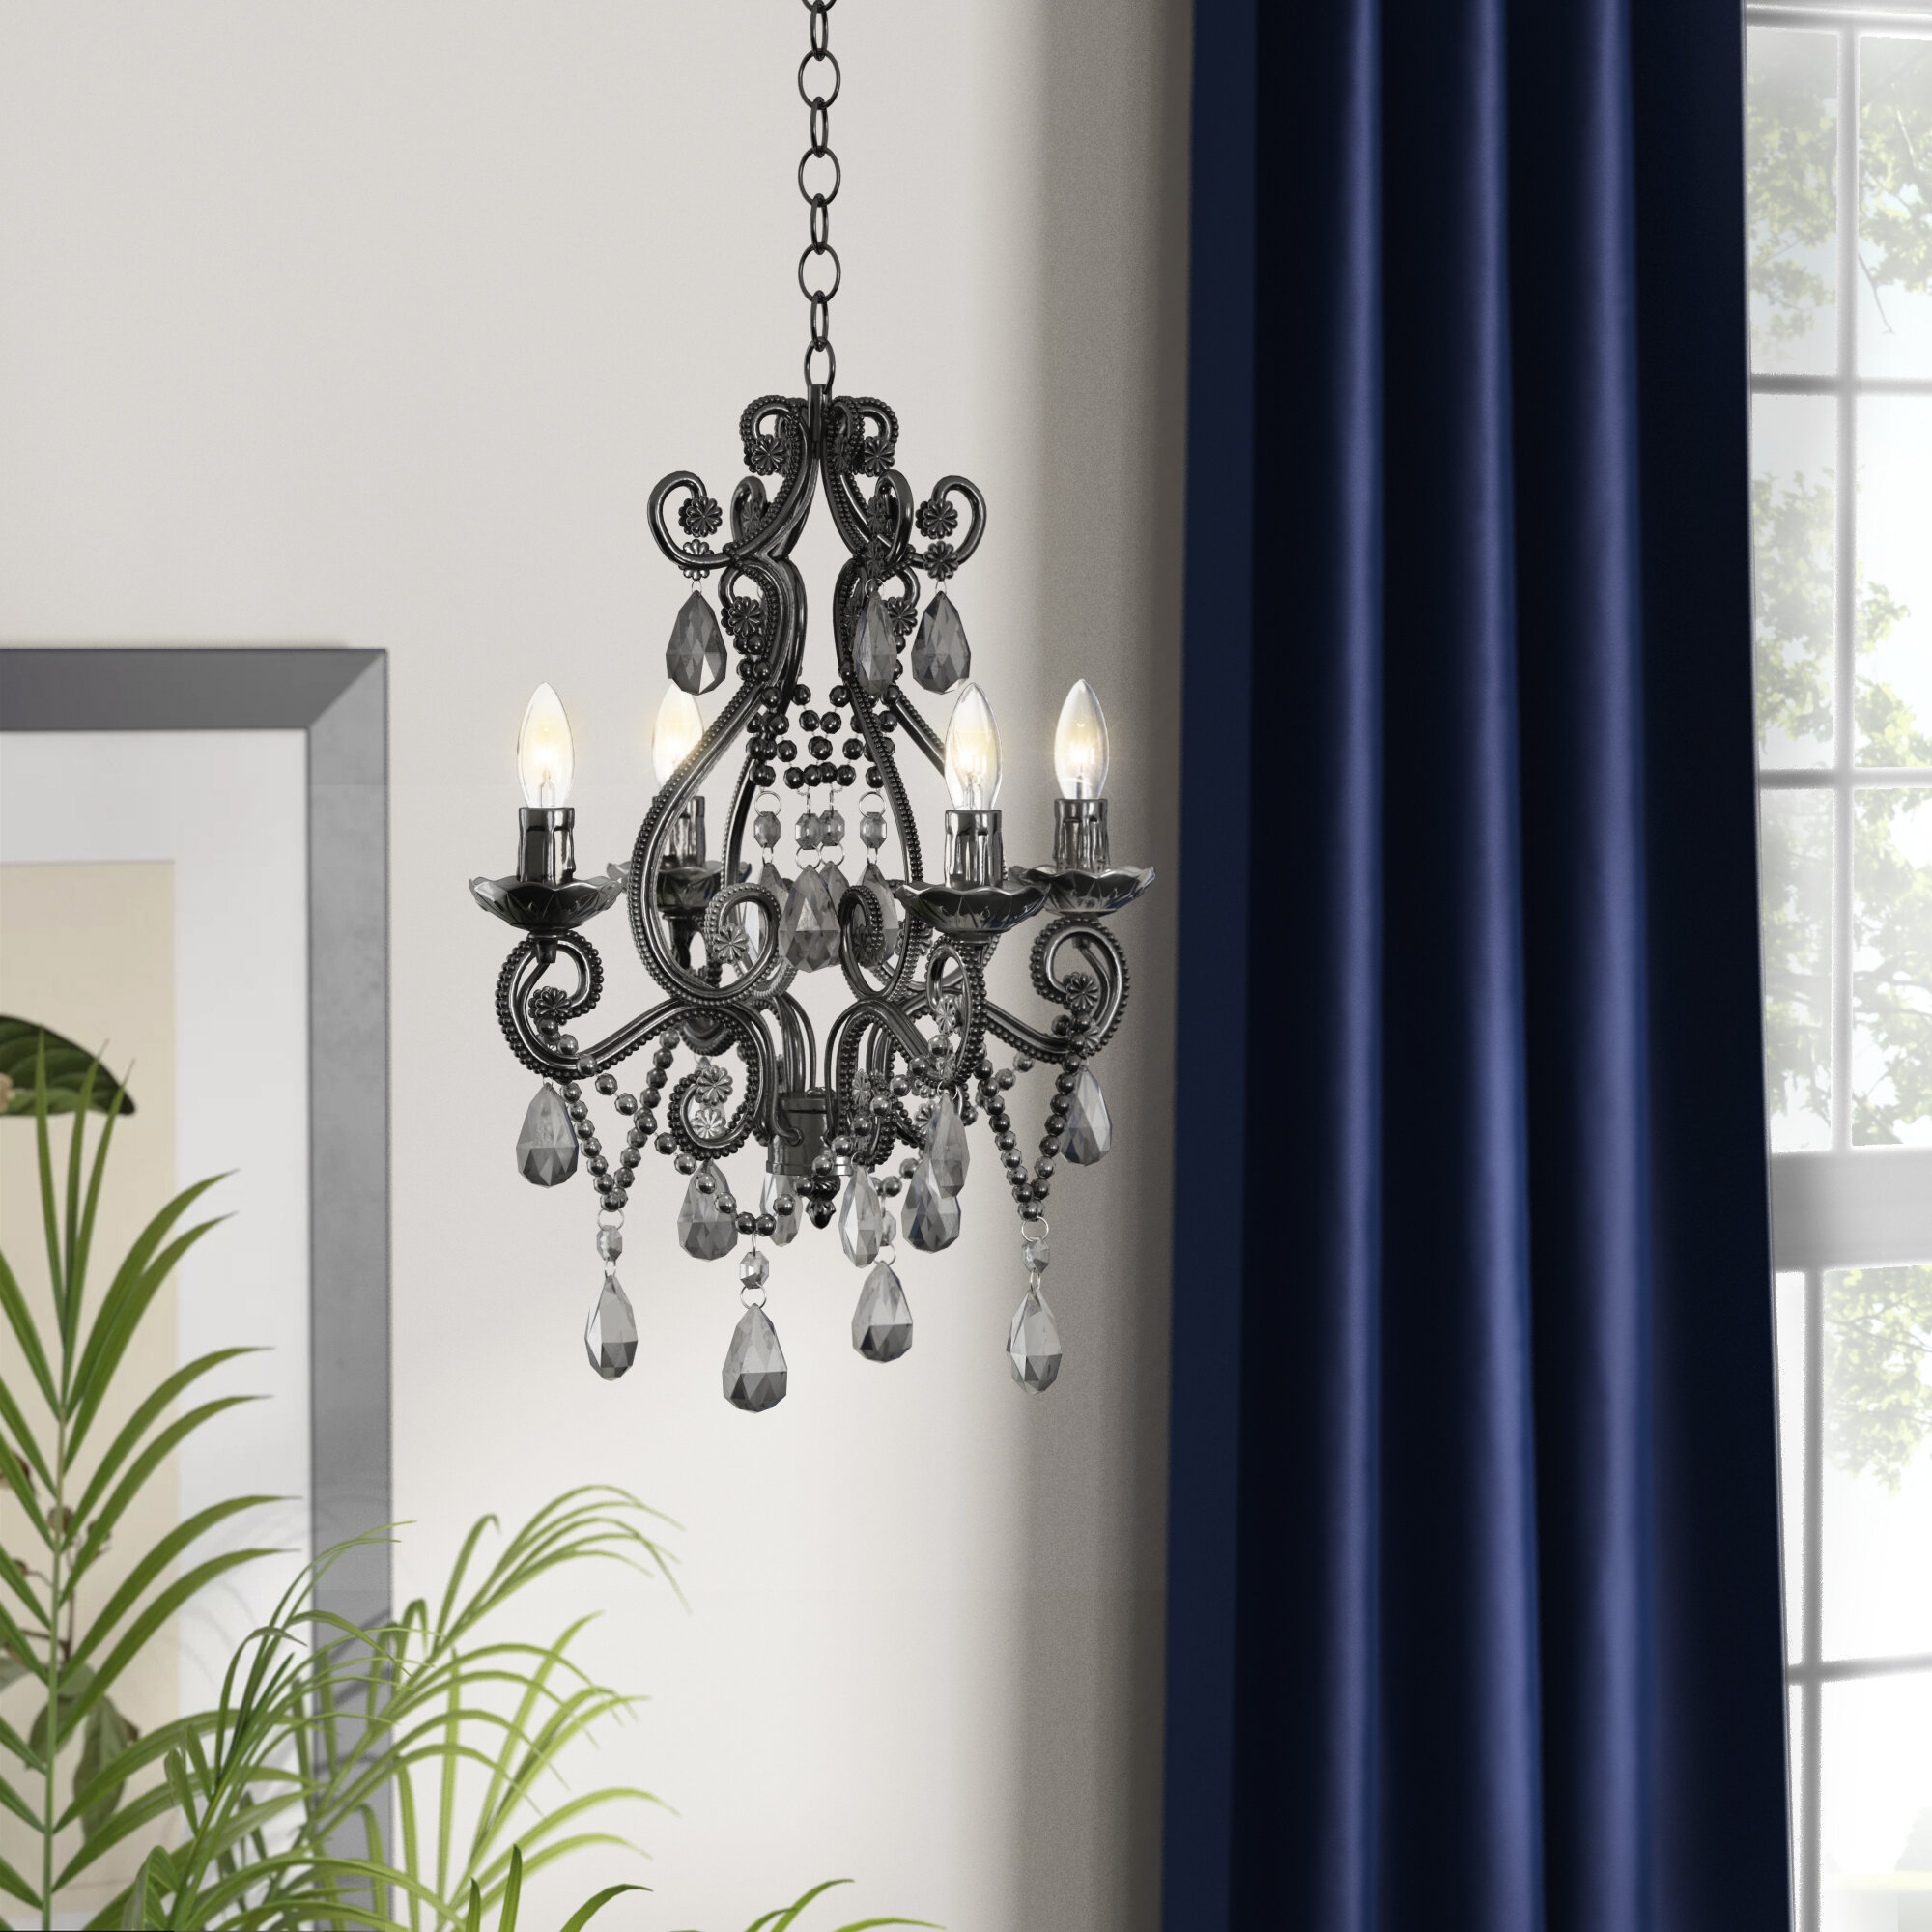 Featured Photo of Aldora 4 Light Candle Style Chandeliers